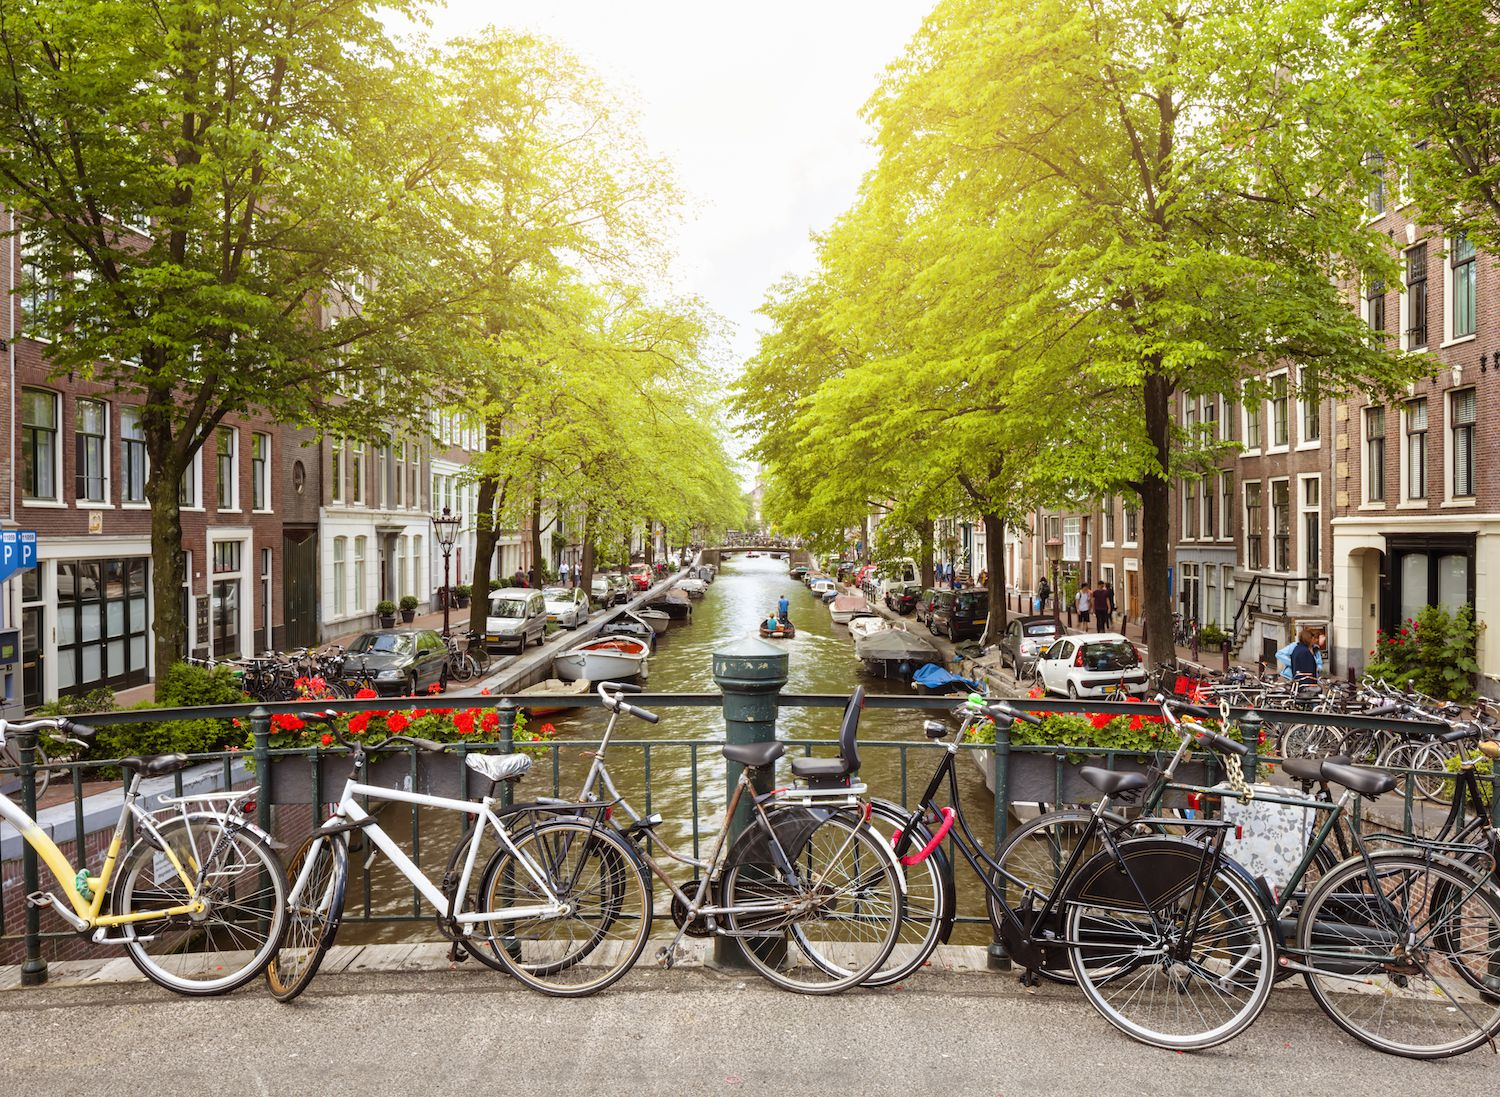 Basic dutch phrases to use in amsterdam bloemgracht canal in jordaan district kristyandbryce Gallery